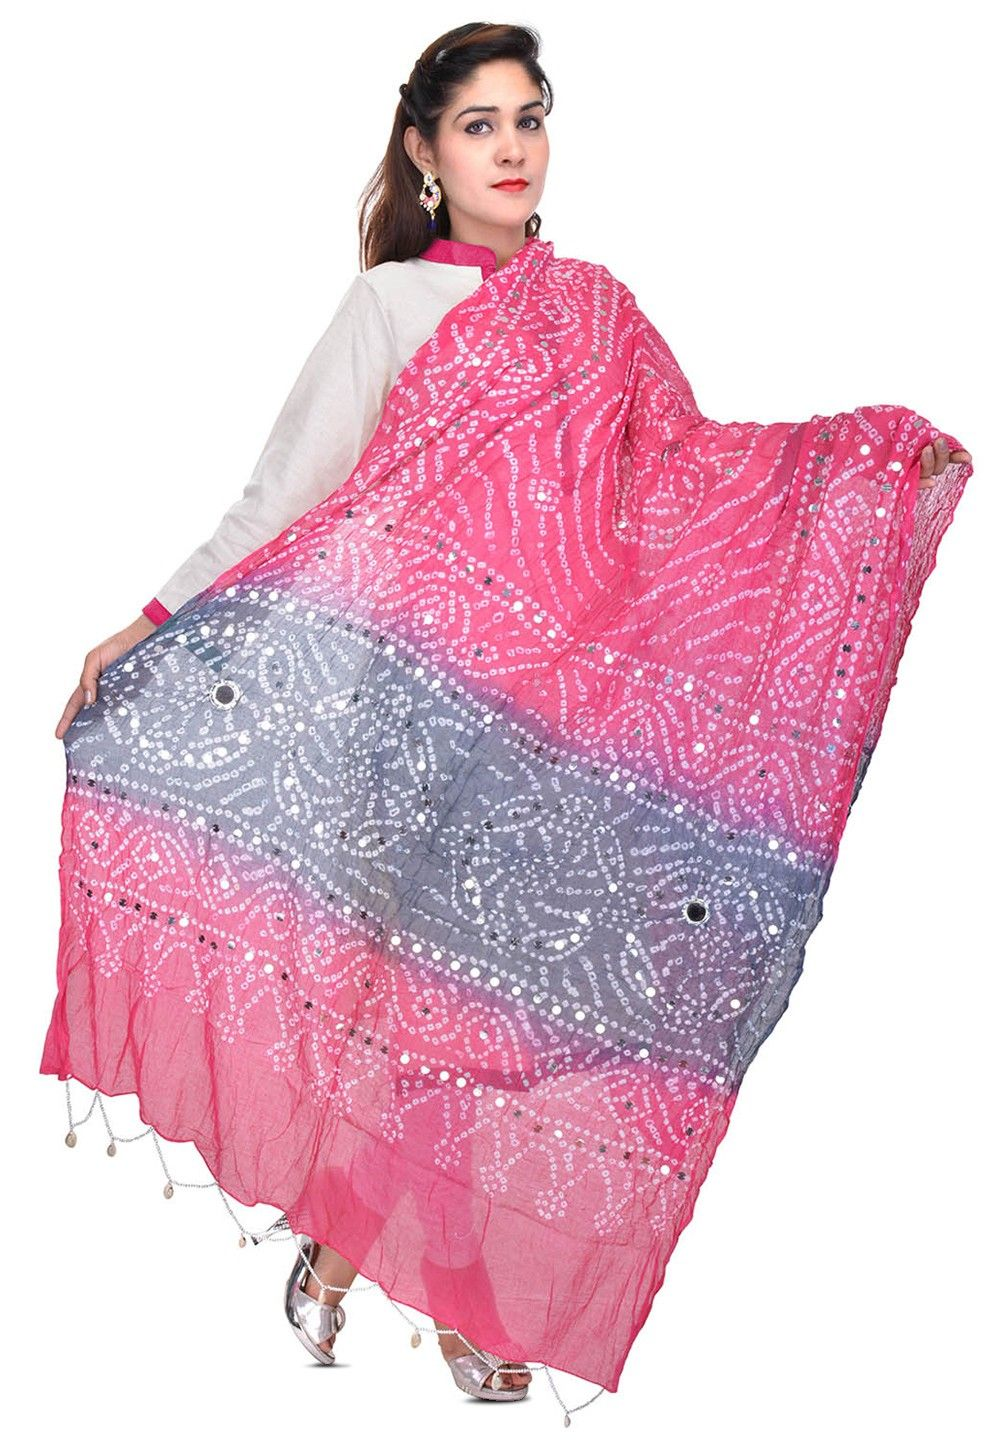 Bandhani Printed Cotton Dupatta in Pink and Blue